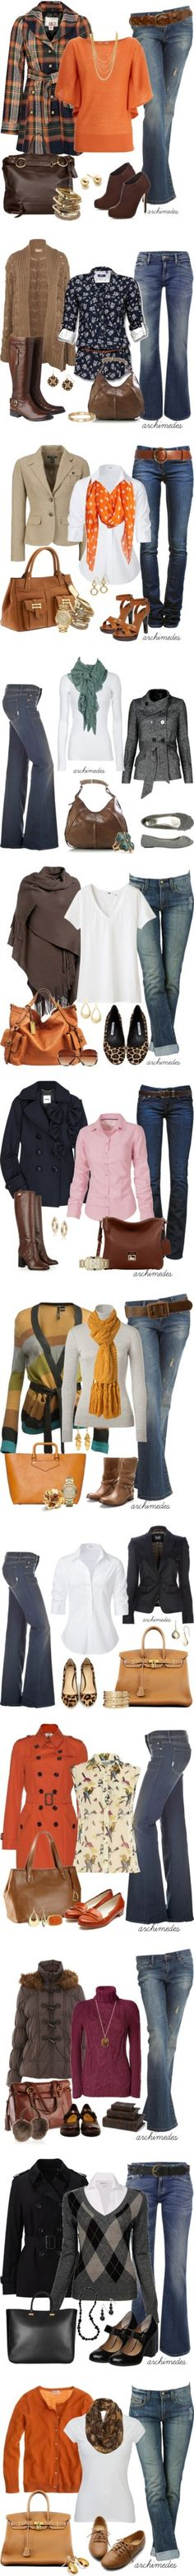 Fall clothing!